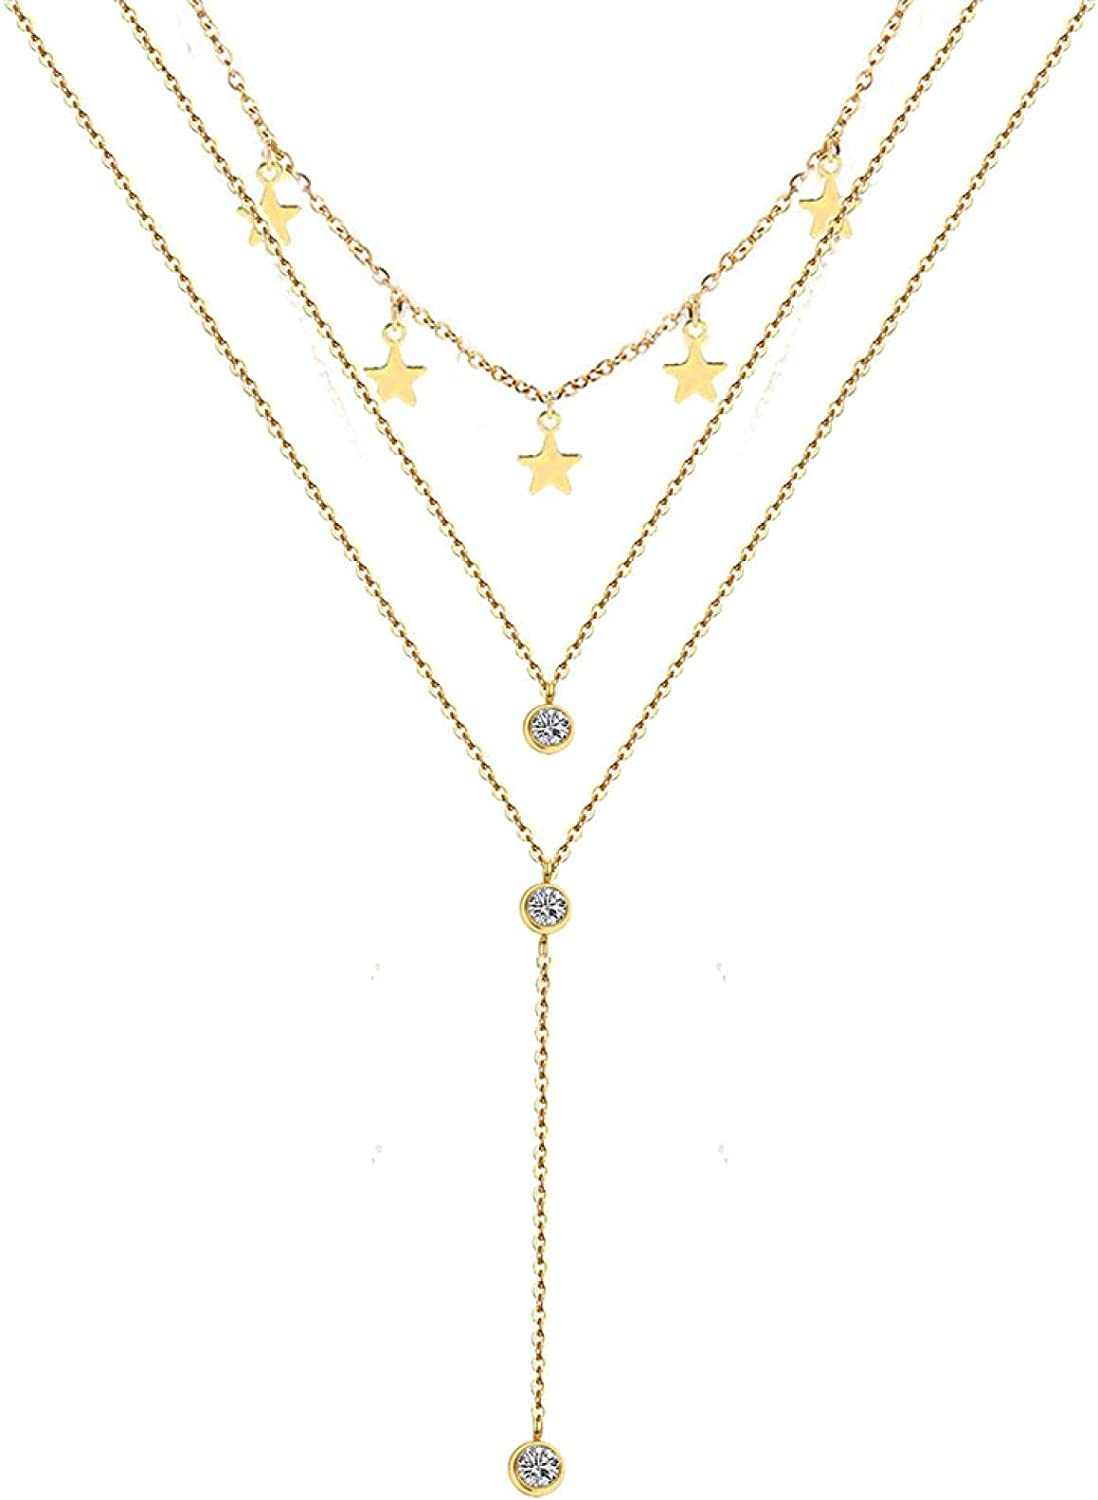 Naswi Stainless Steel Choker Collar Necklaces 3 Layer Crystal Star Pendant Necklaces for Women Multilayer Star Necklaces